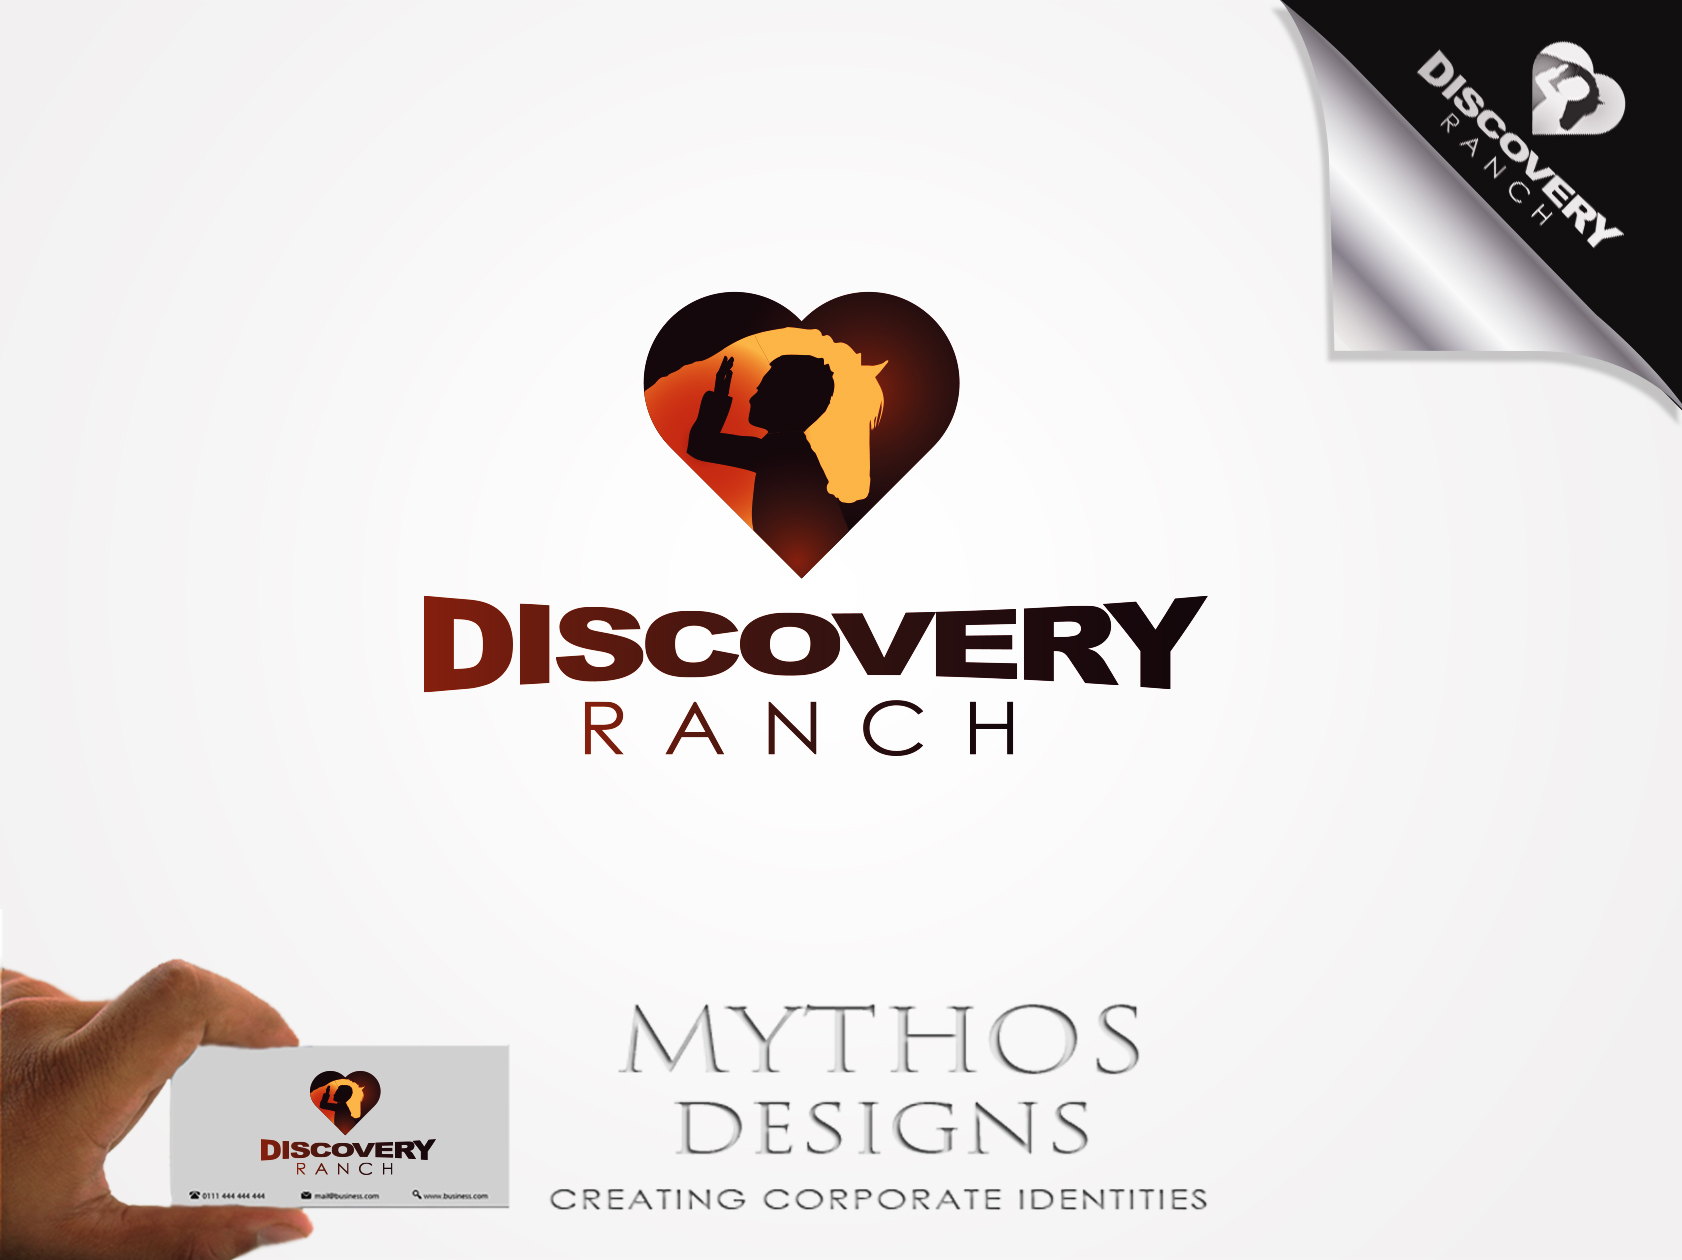 Logo Design by Mythos Designs - Entry No. 74 in the Logo Design Contest Creative Logo Design for Discovery Ranch.